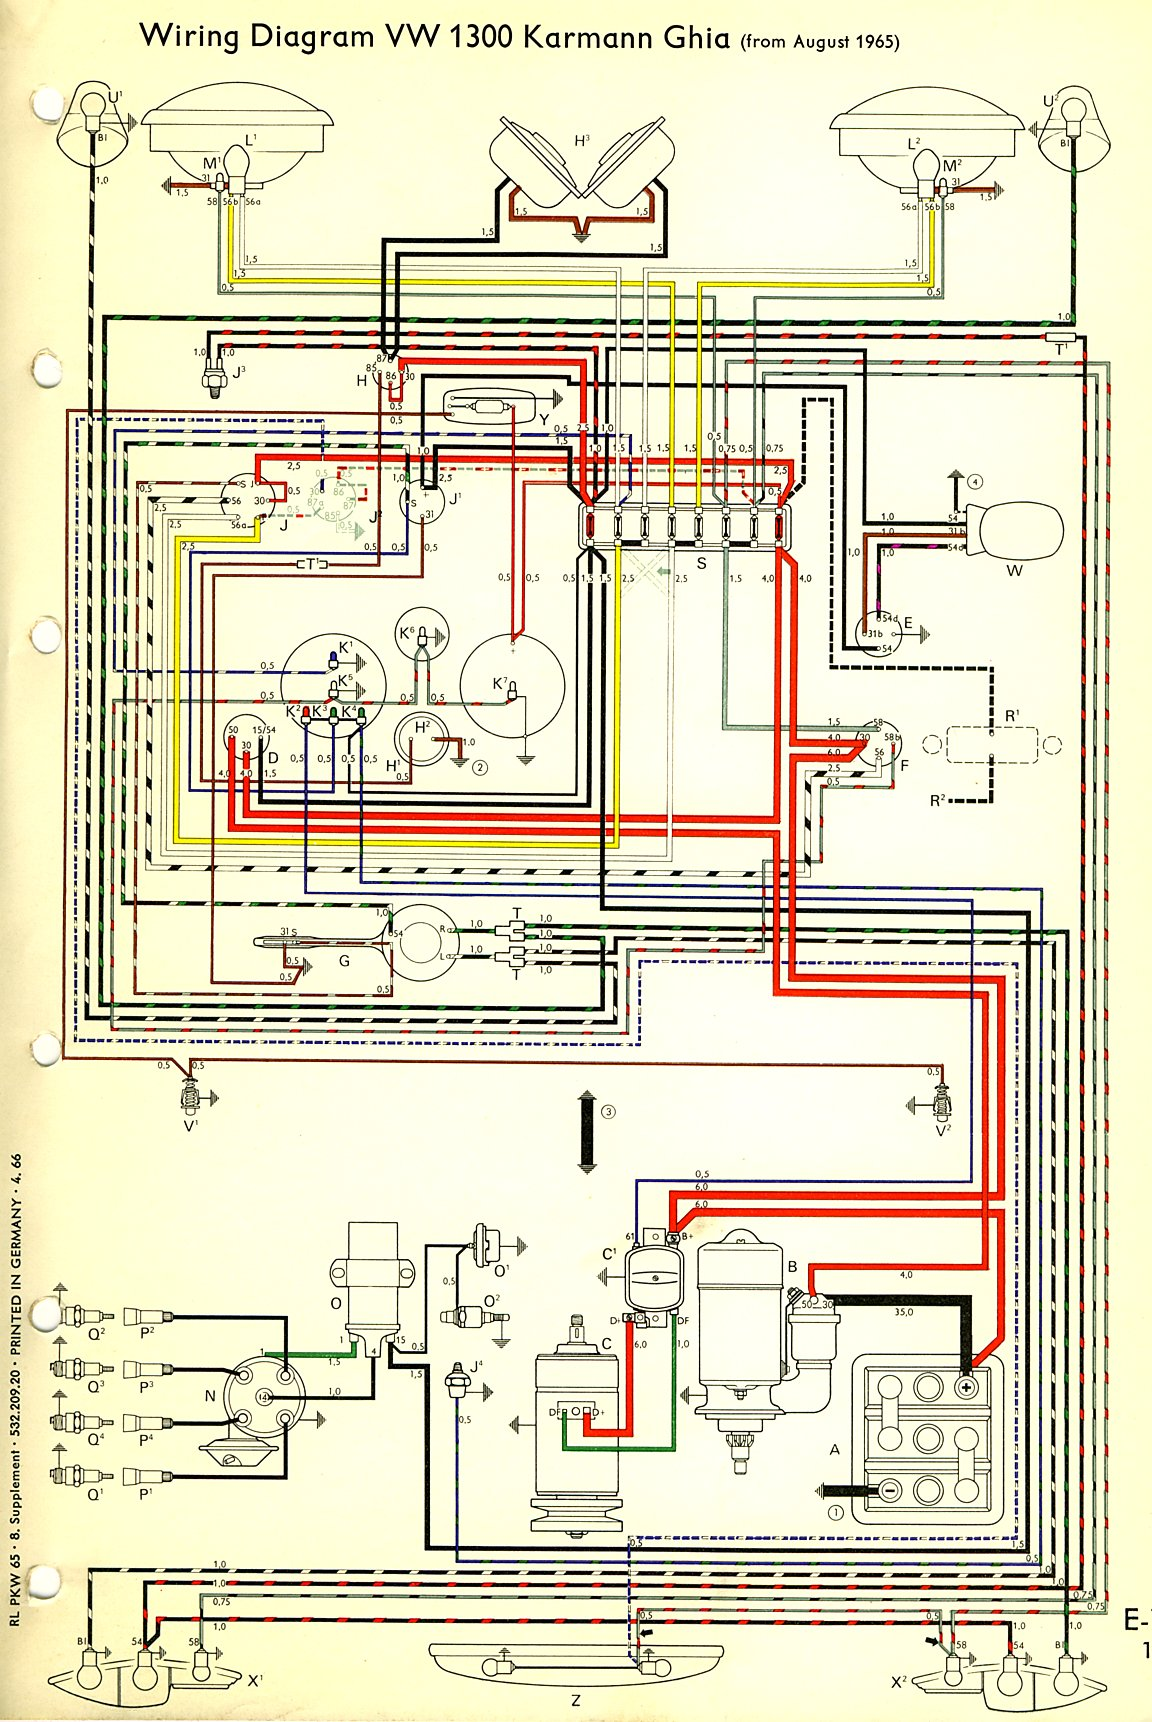 1973 vw beetle ignition coil wiring diagram 36 volt ez go golf cart solenoid 1967 get free image about